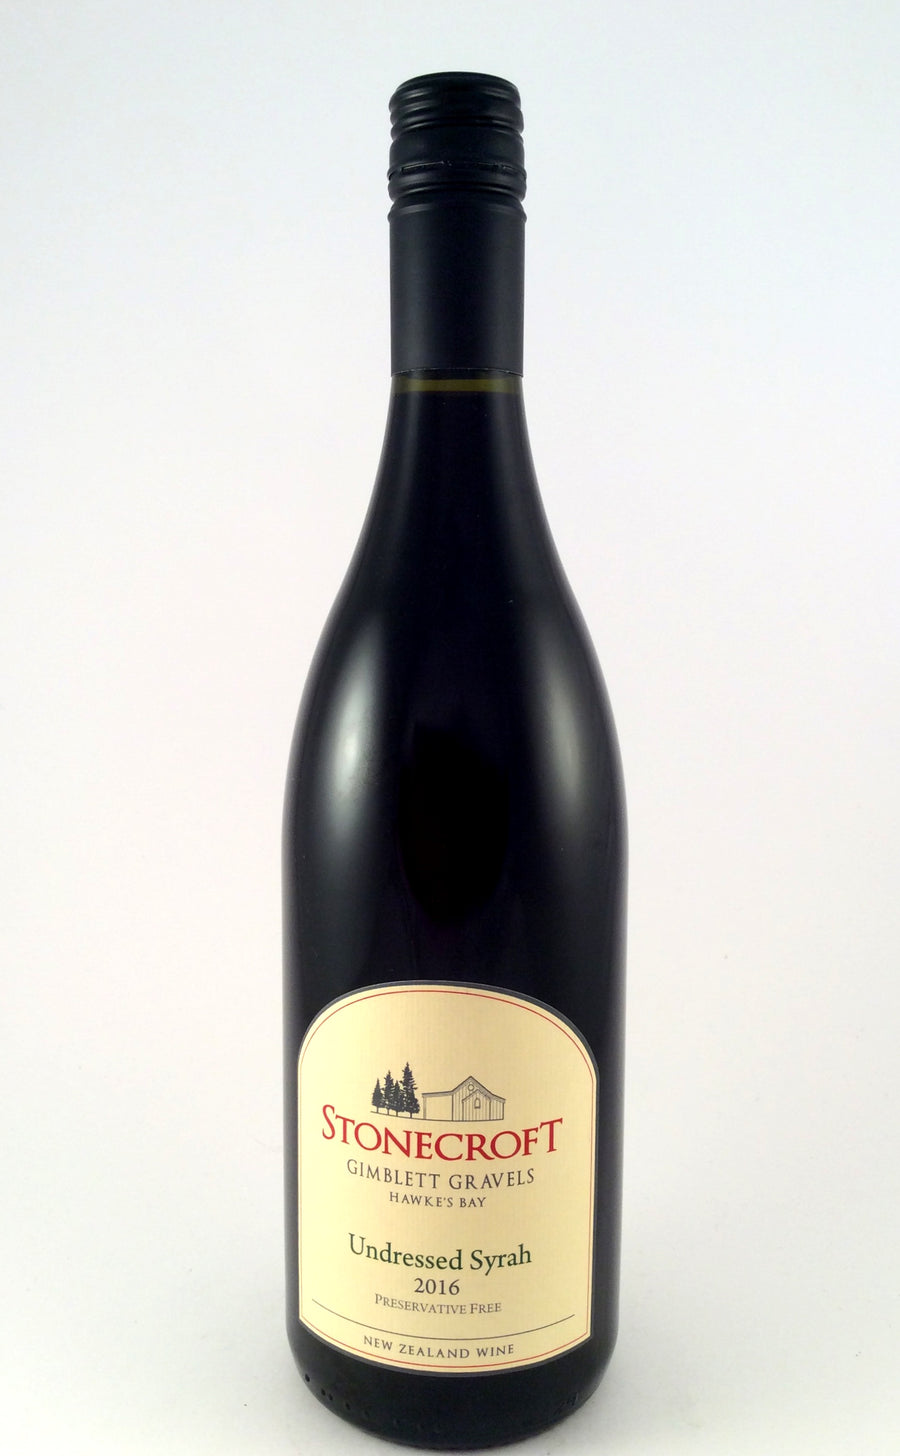 Stonecroft Undressed Syrah-Wineseeker